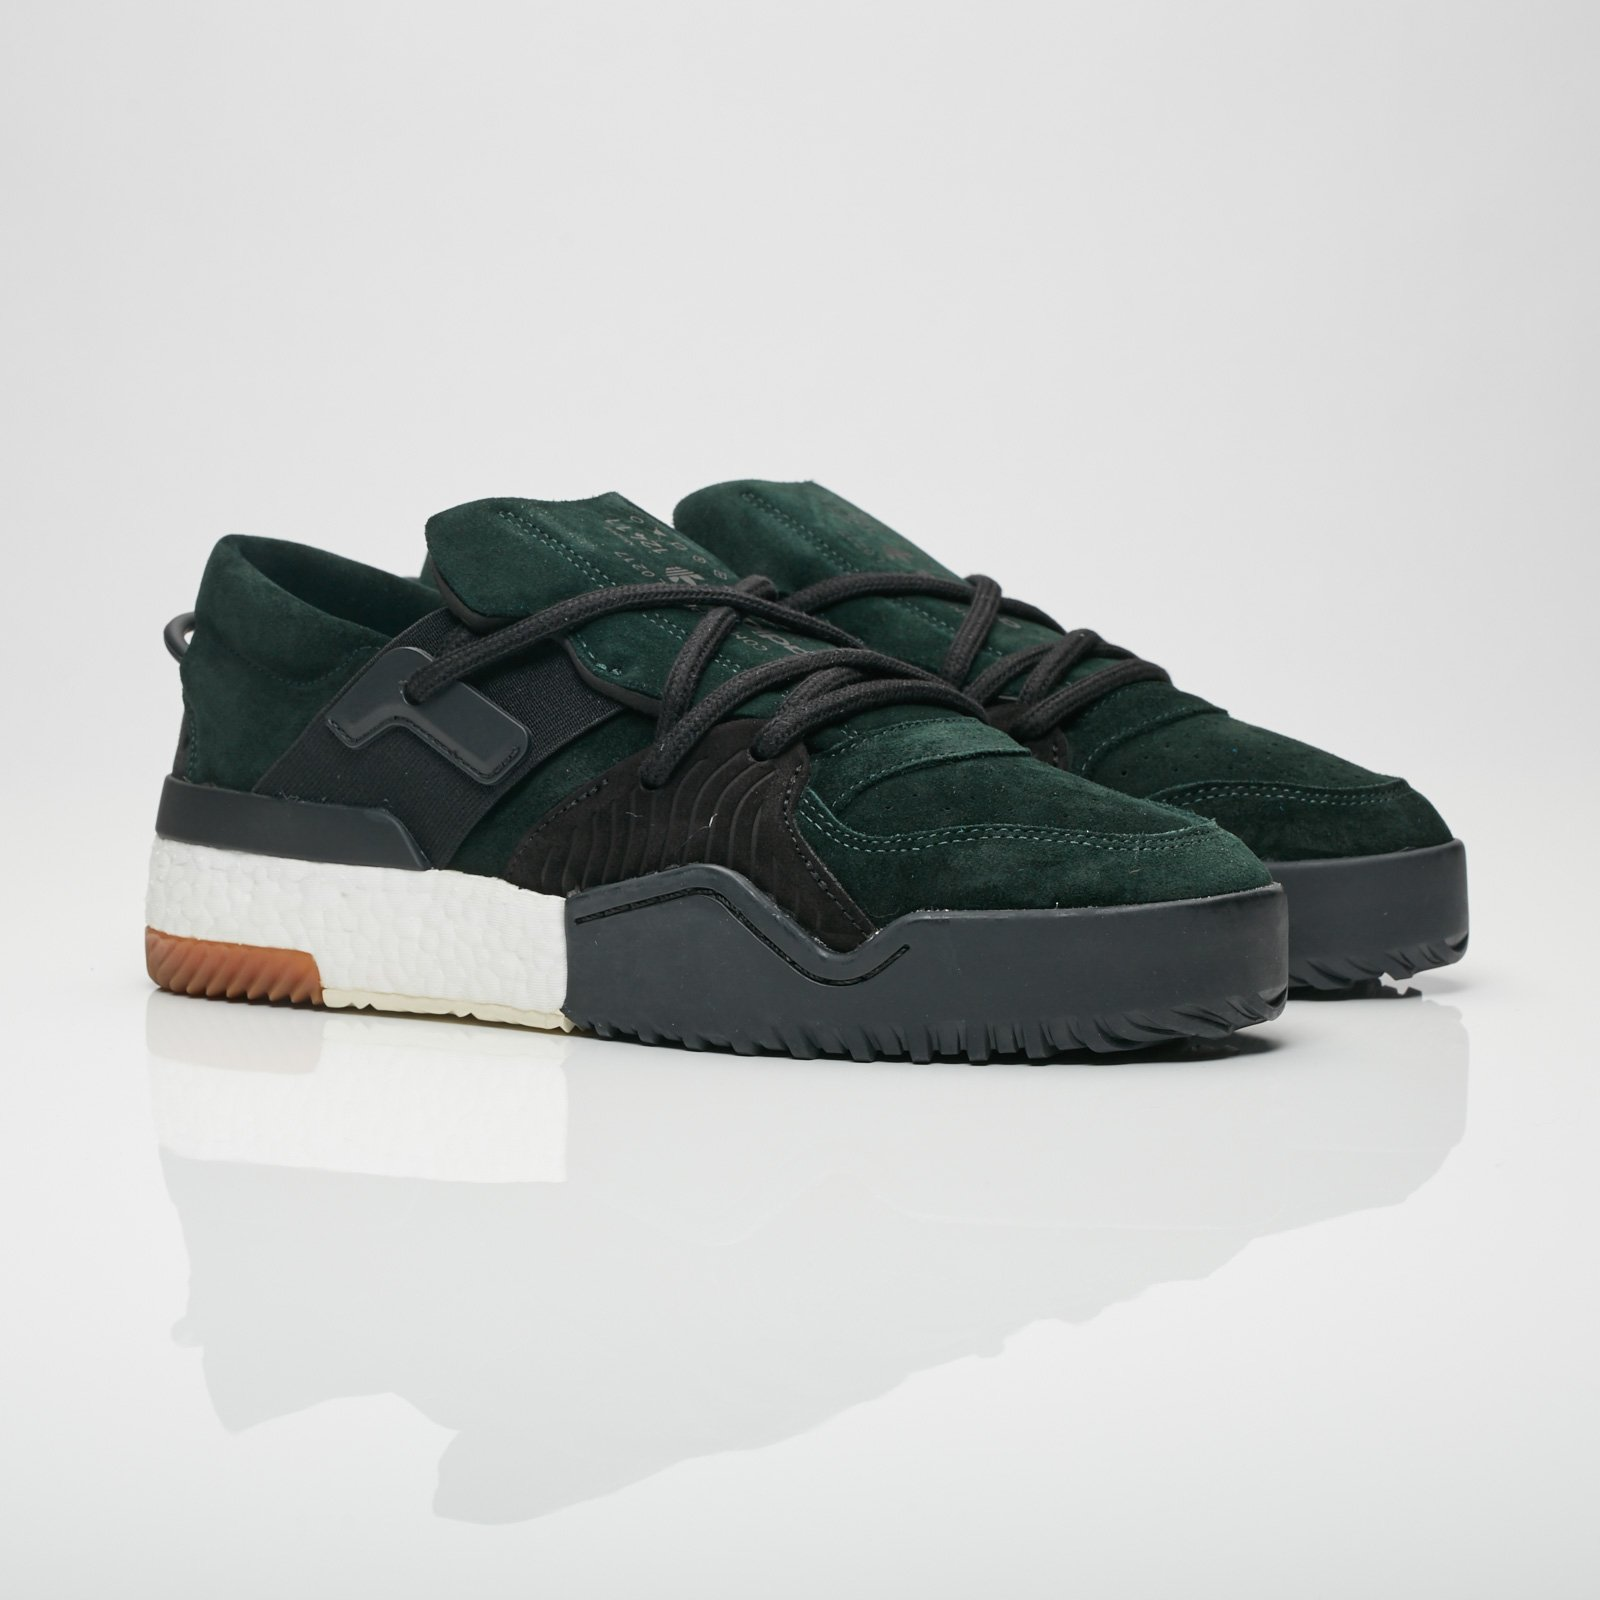 adidas X Alexander Wang basketball sneakers